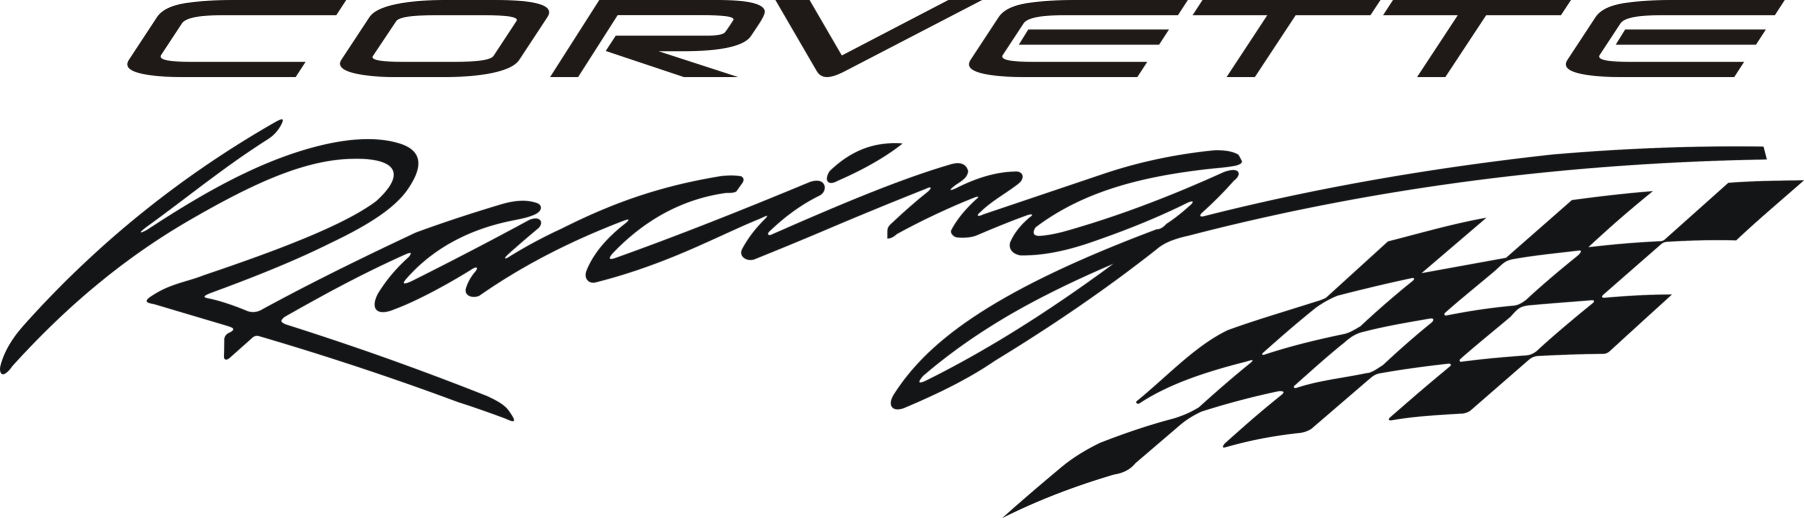 Corvette Racing Decal Checkered Flag Large - Racing decals